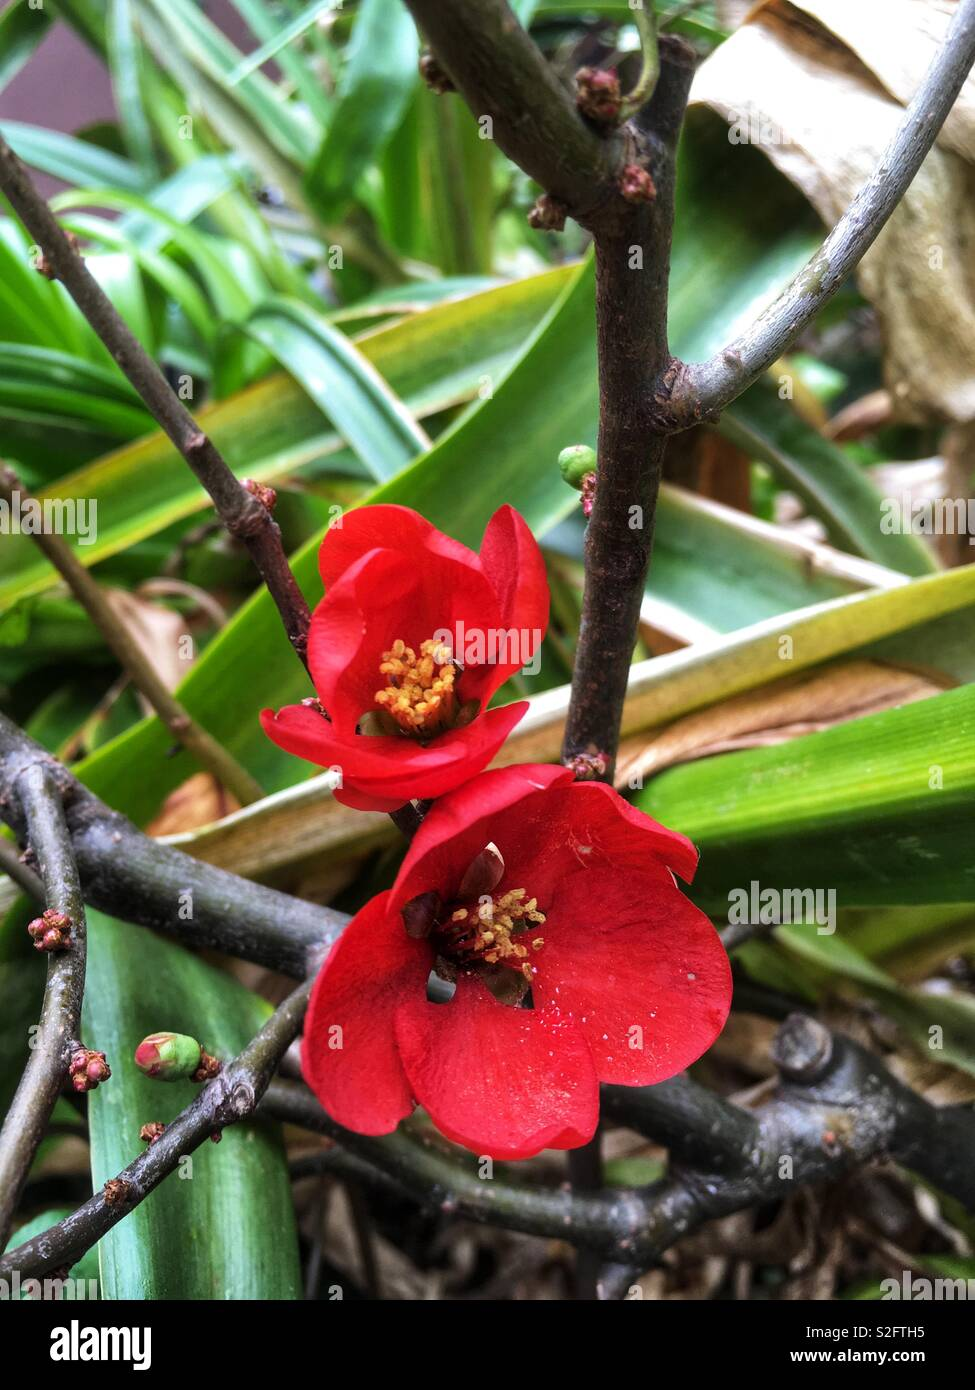 Quince Flowers - Stock Image